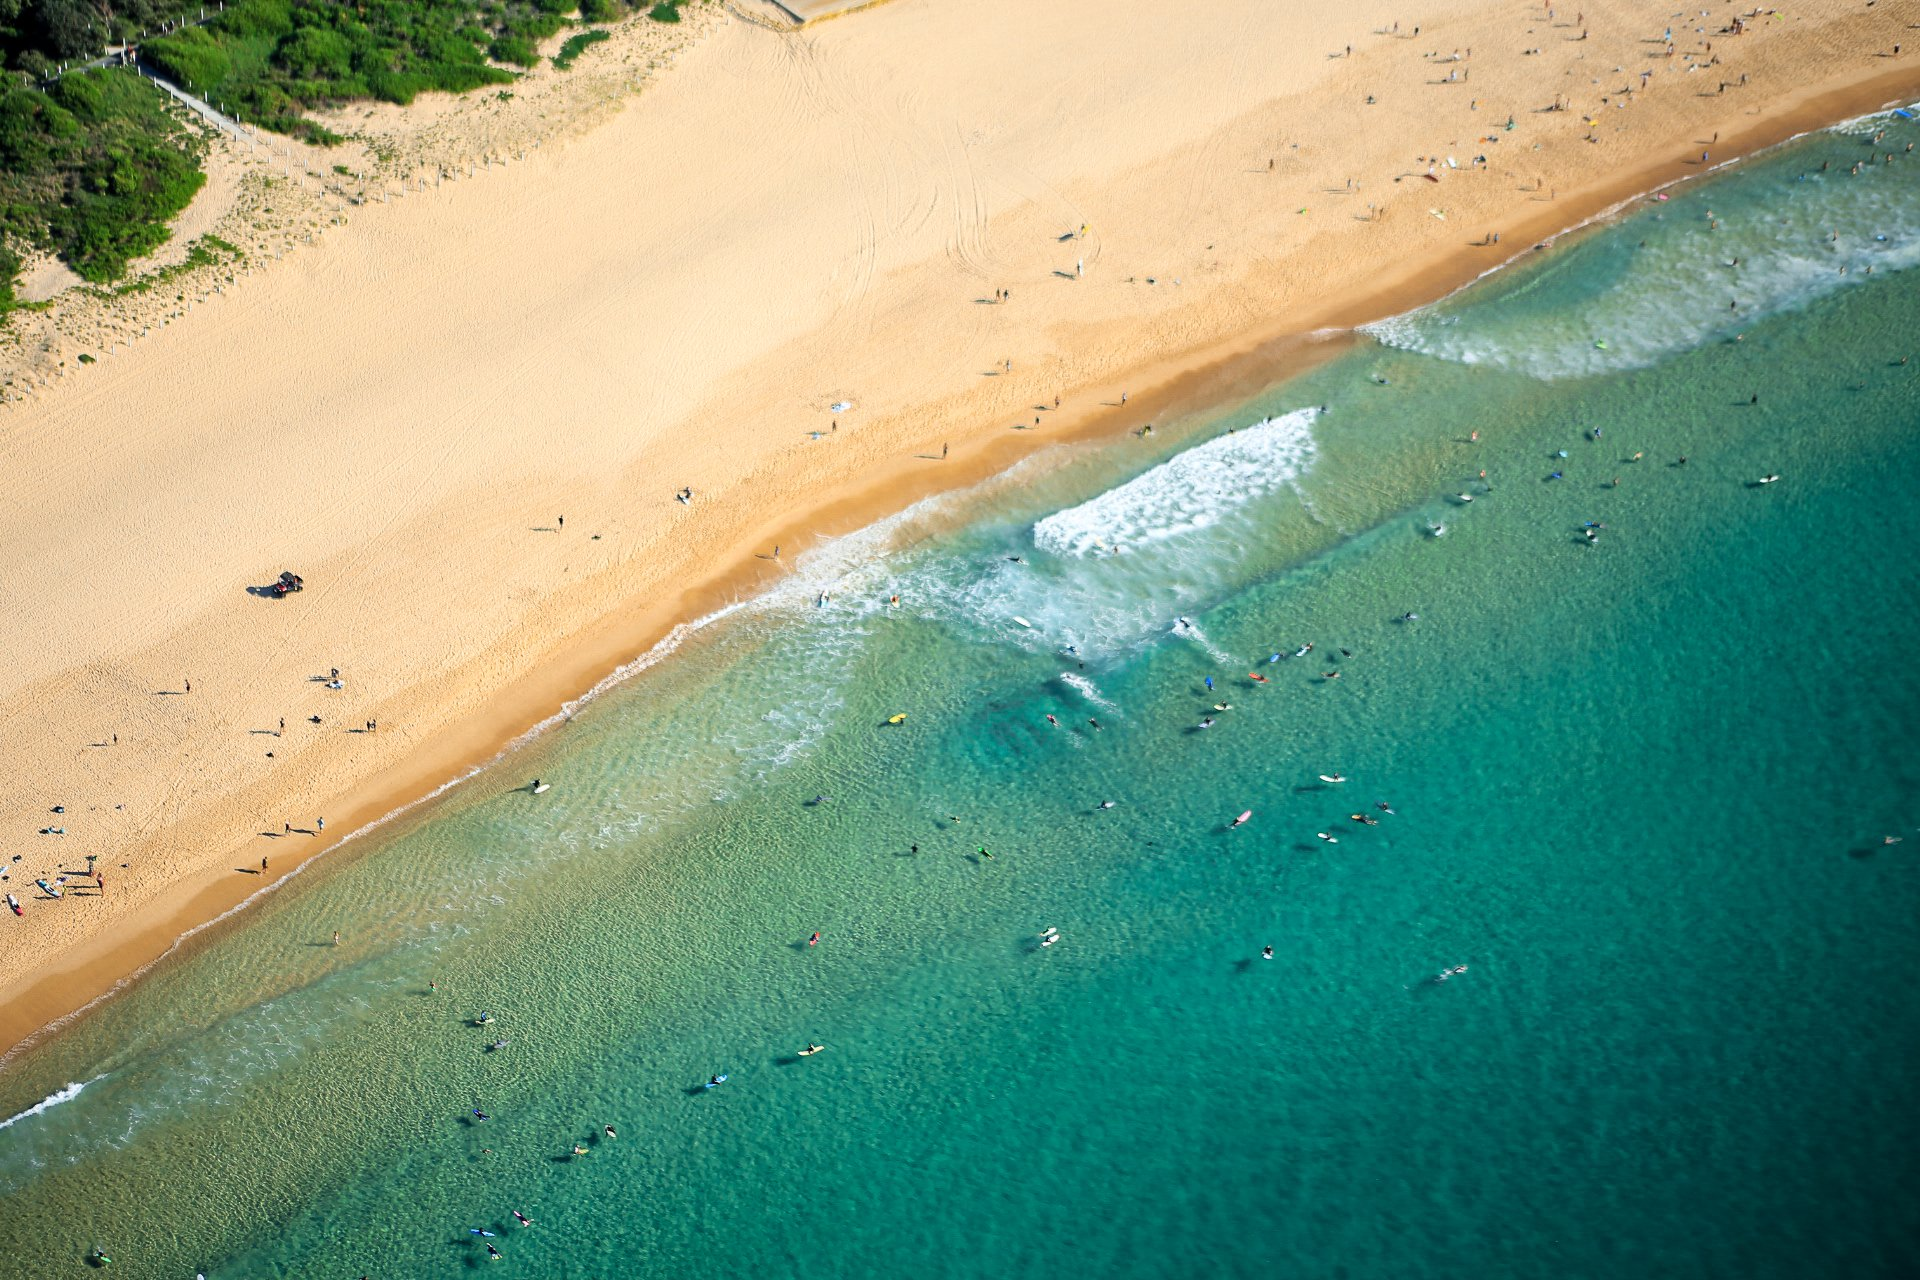 Beach from above with surfers and swimmers